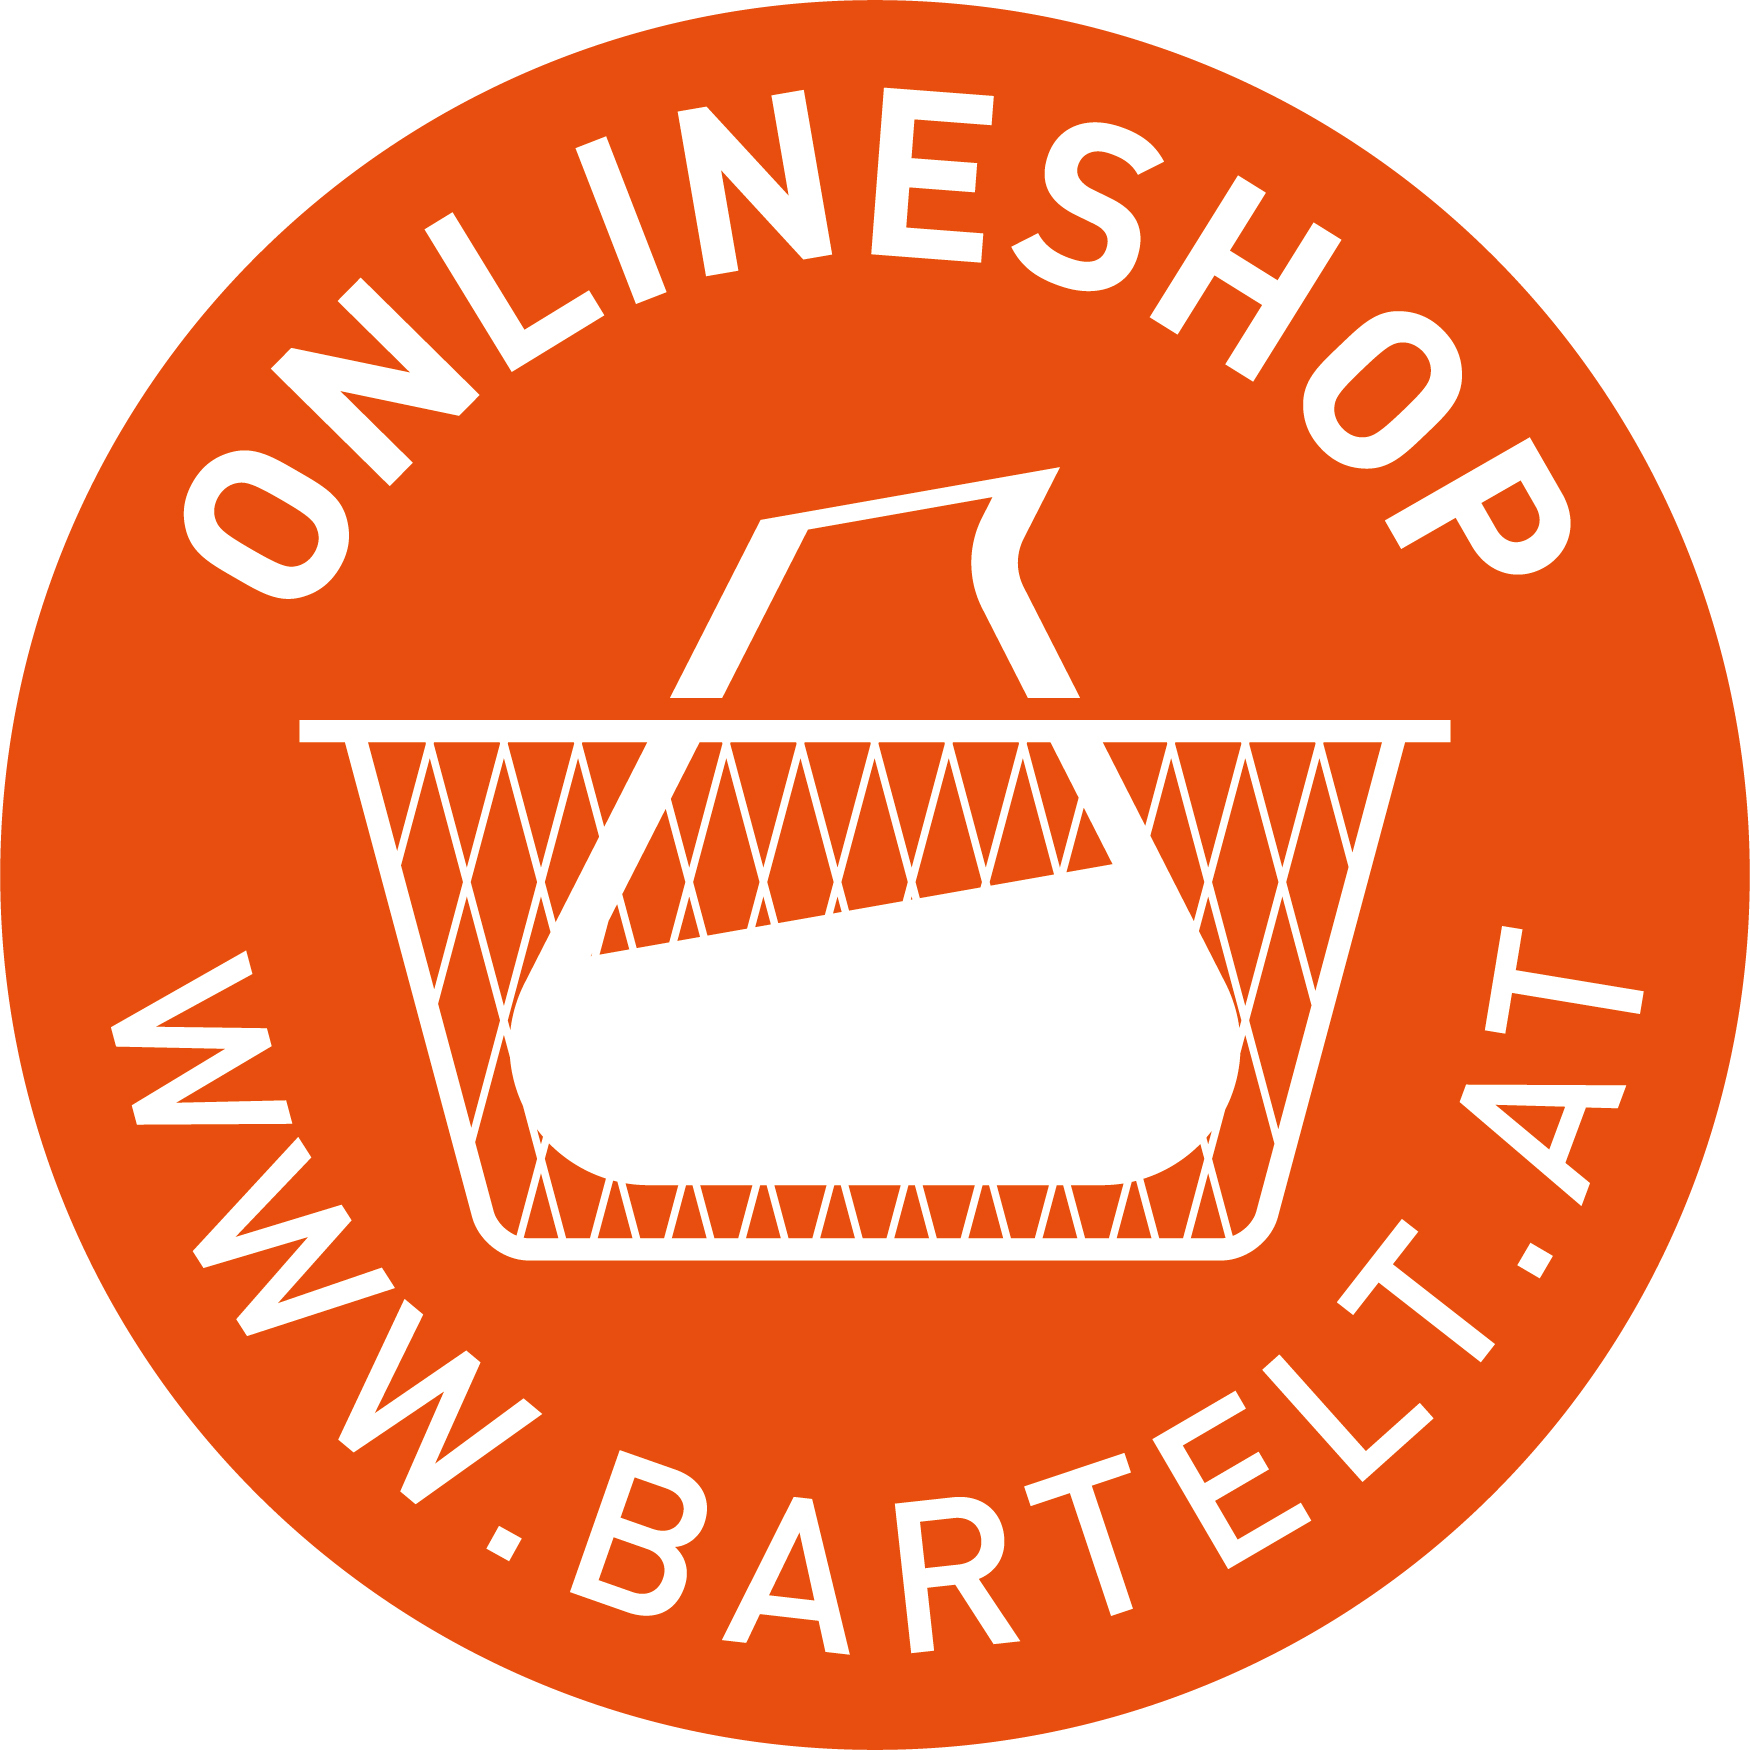 bartelt_shop_icon_orange_RGB_seal